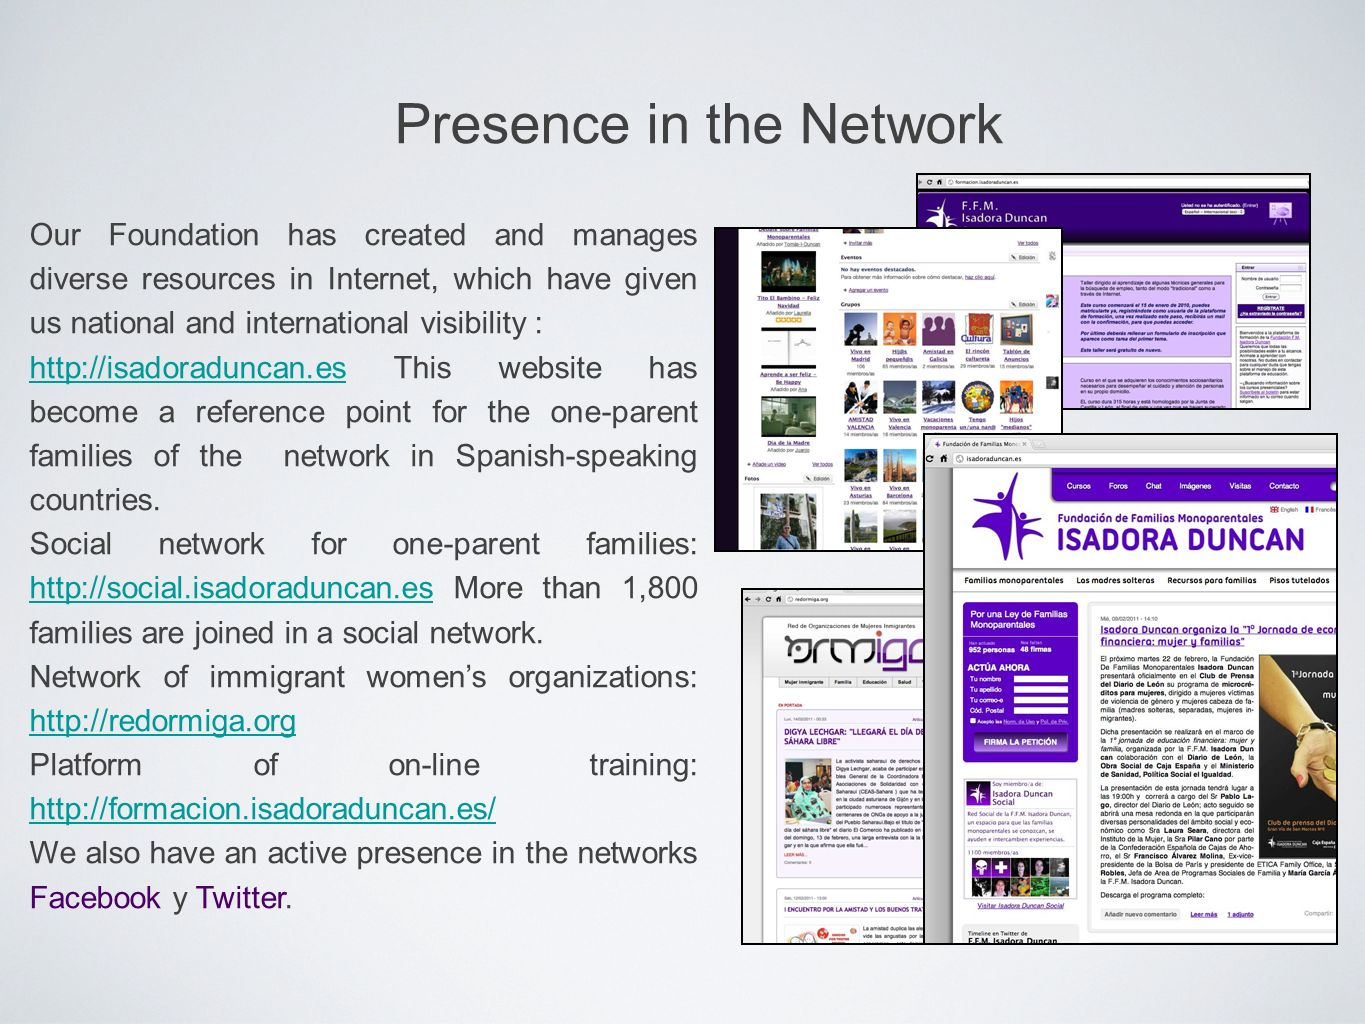 Presence in the Network Our Foundation has created and manages diverse resources in Internet, which have given us national and international visibility : http://isadoraduncan.eshttp://isadoraduncan.es This website has become a reference point for the one-parent families of the network in Spanish-speaking countries.